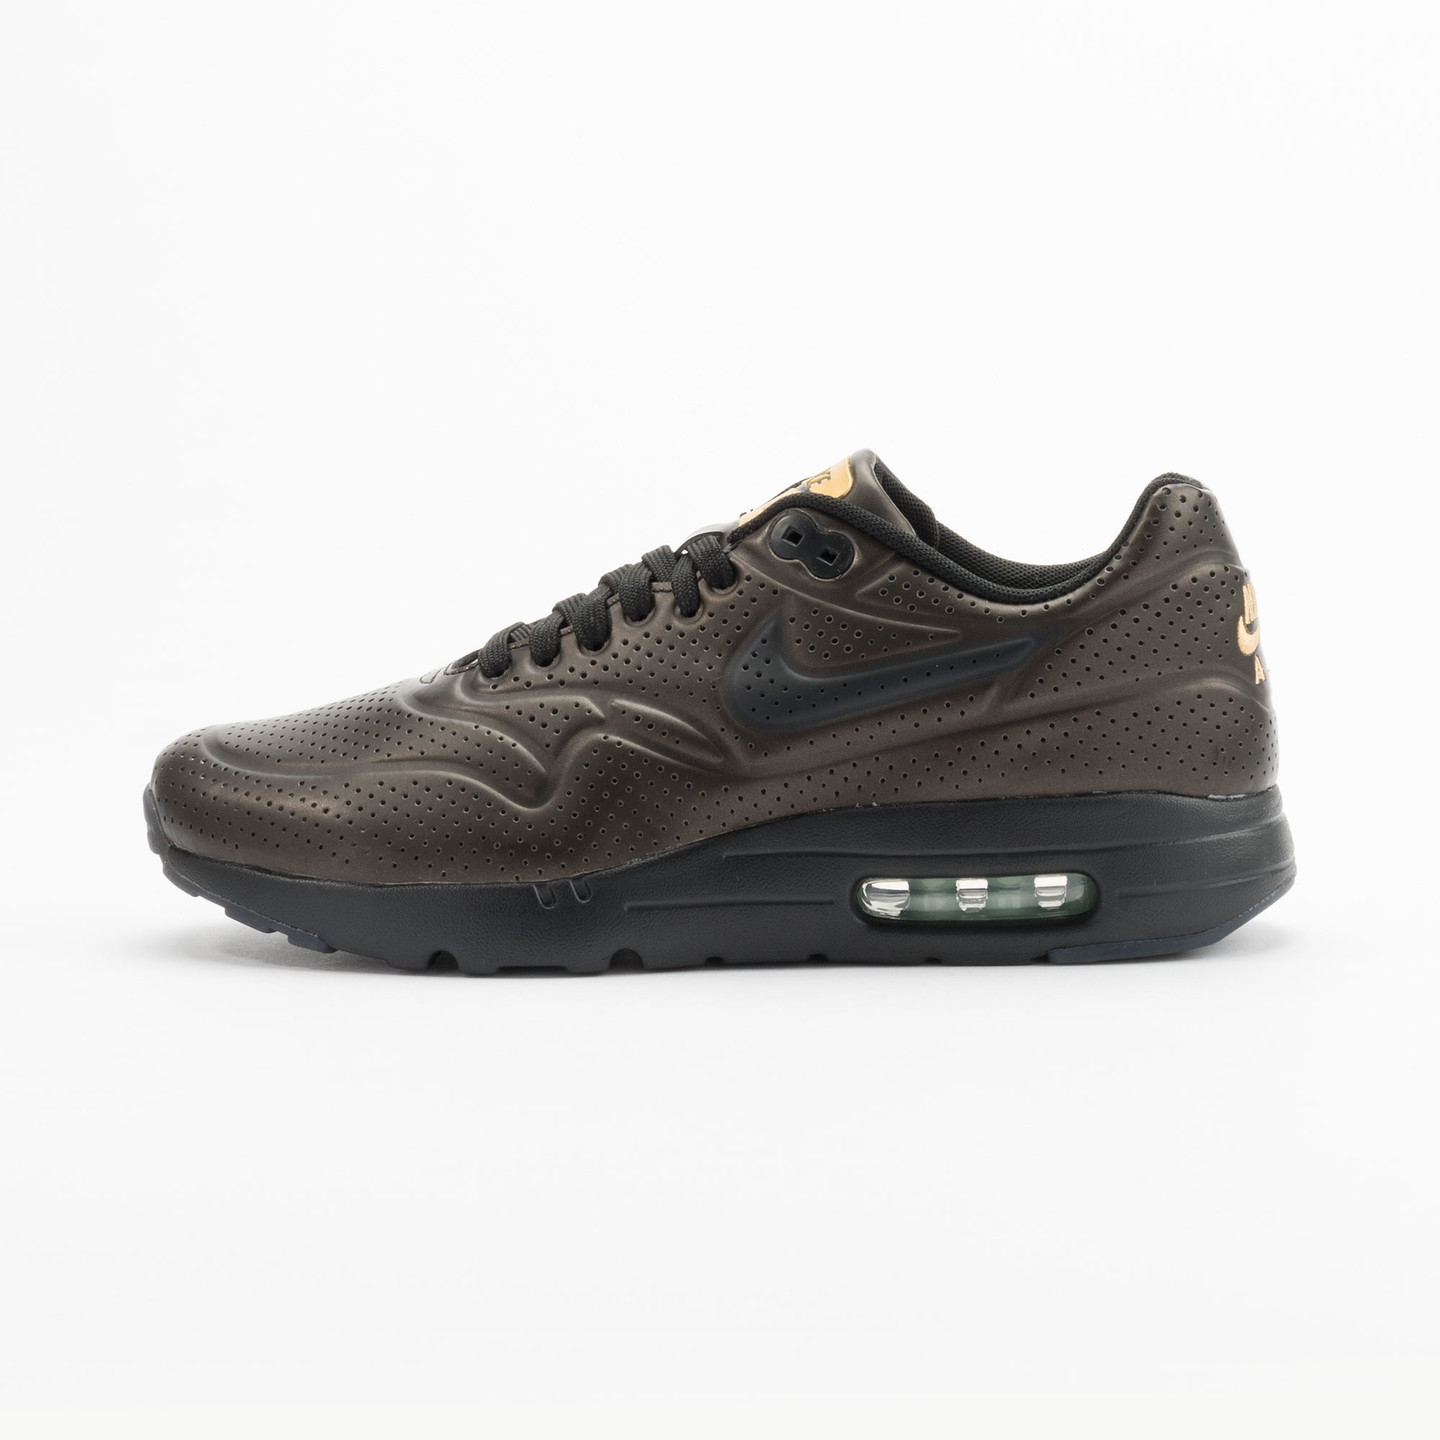 Nike Air Max 1 Ultra Moire Metallic Gold / Black 705297-700-43